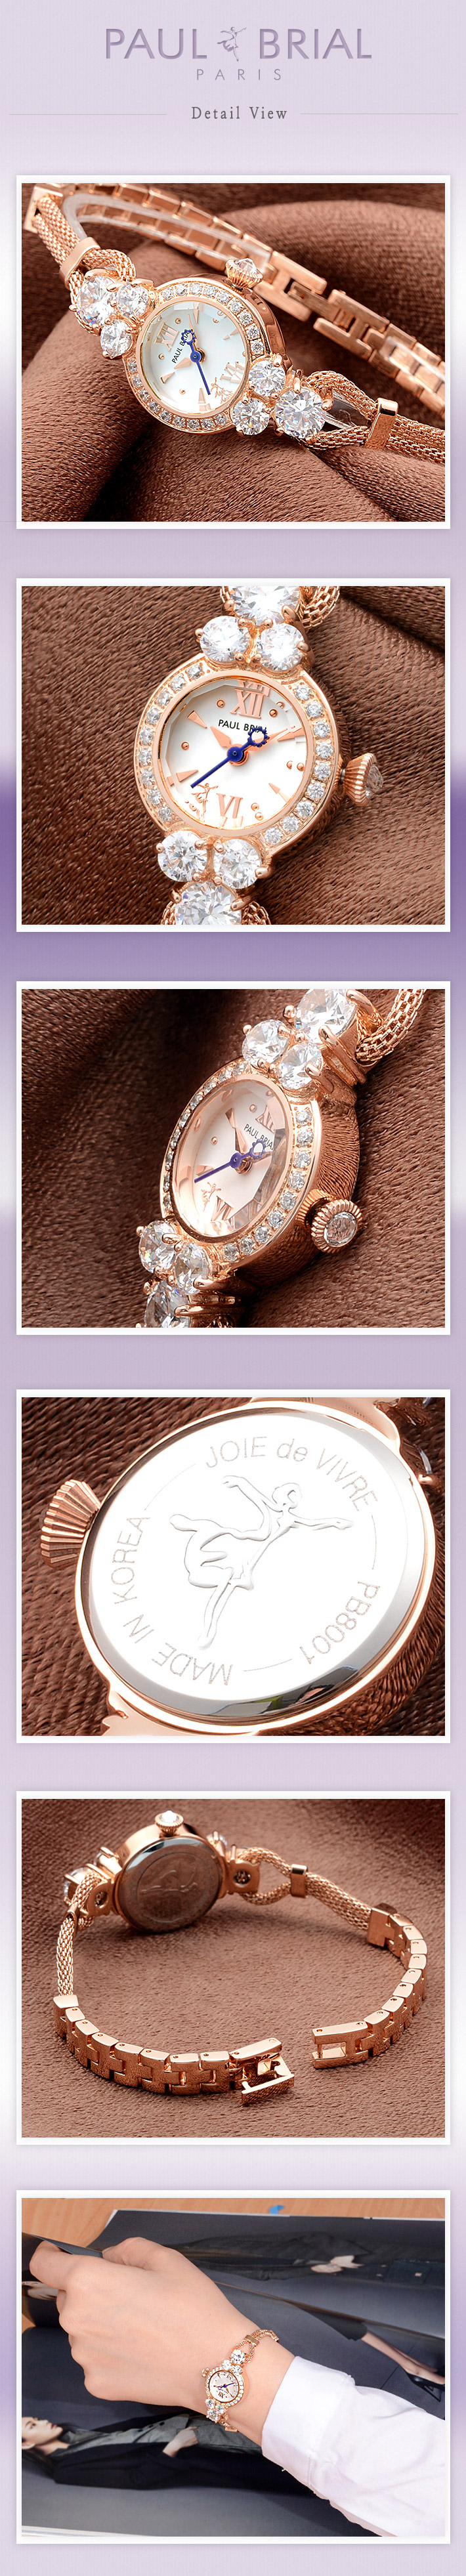 [ PAUL BRIAL ] KOREA MADE HIGH QUALITY LADIES ROSE GOLD BRACELET WATCH WATCH PB8001RO VERSAILLES